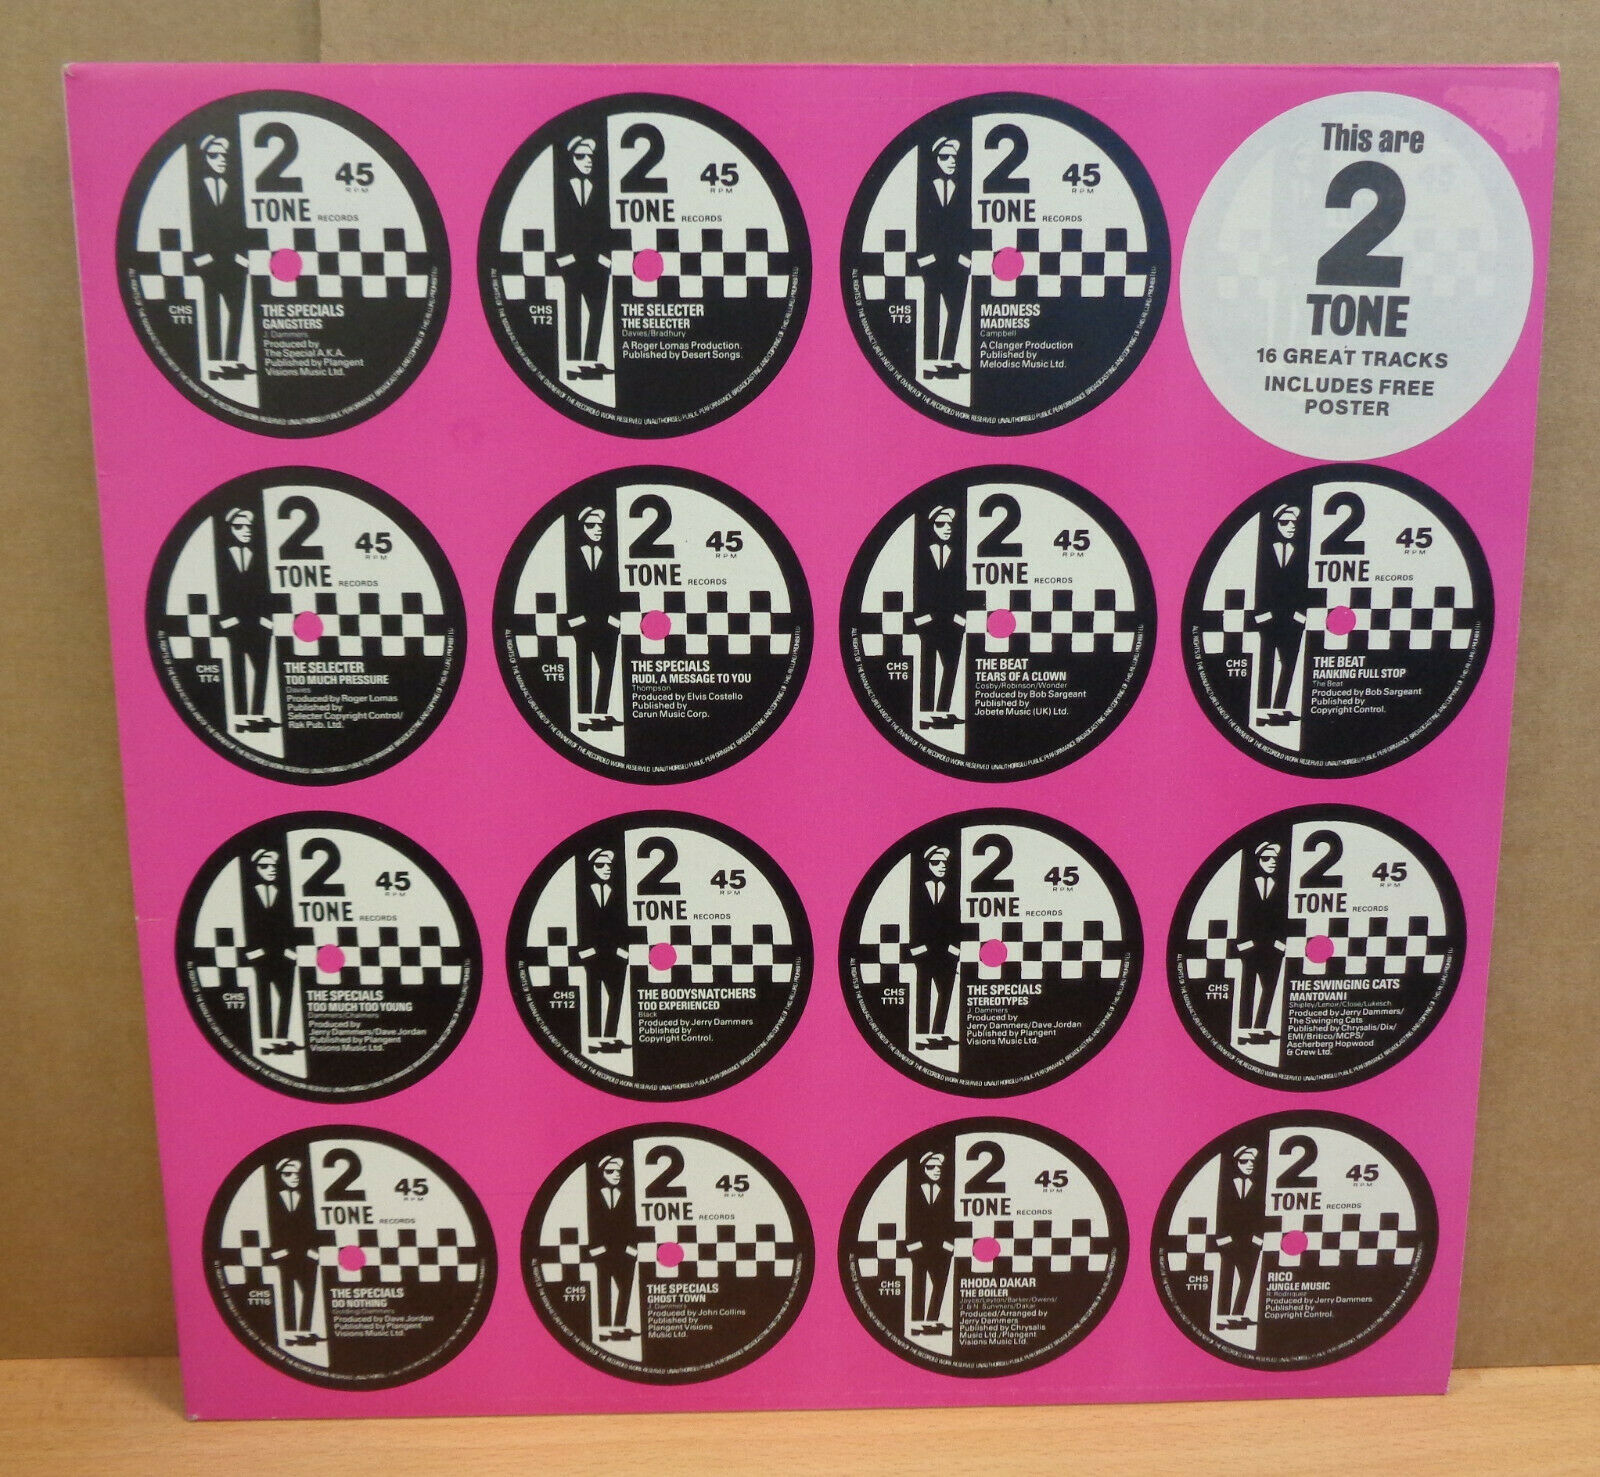 2 TONE THIS ARE TWO TONE UK TWO TONE RECORDS LP CHRTT5007 PINK COVER POSTER MINT